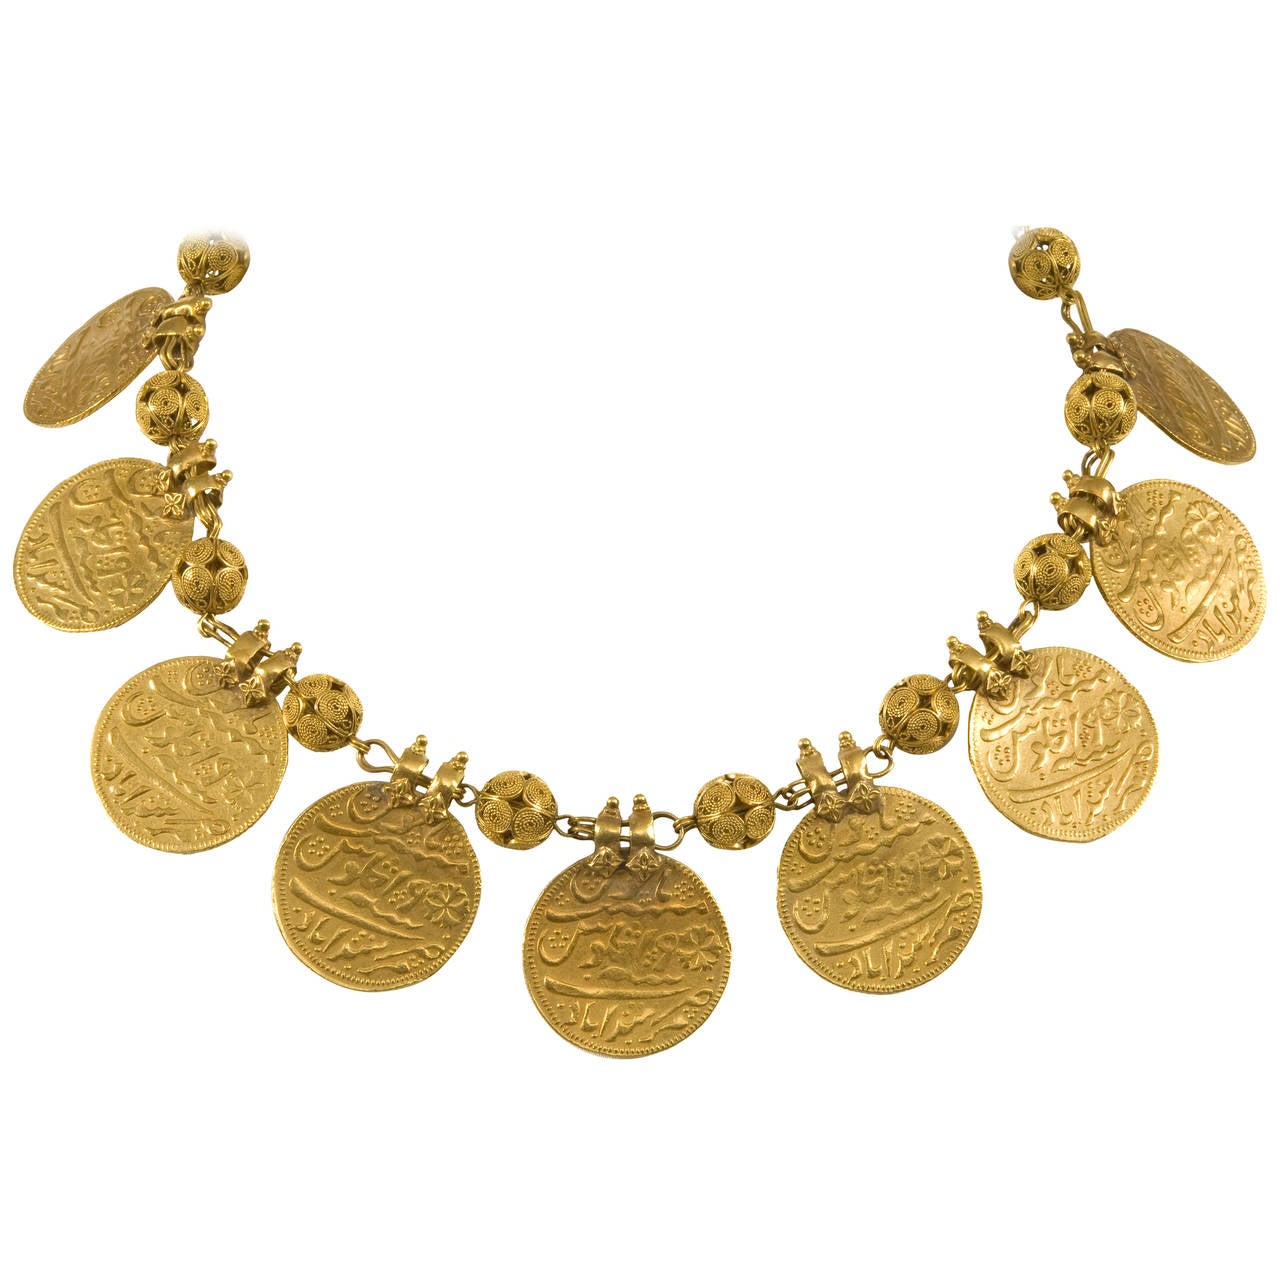 Early 20th Century Indian Kasu Malai Gold Coin Necklace at ...